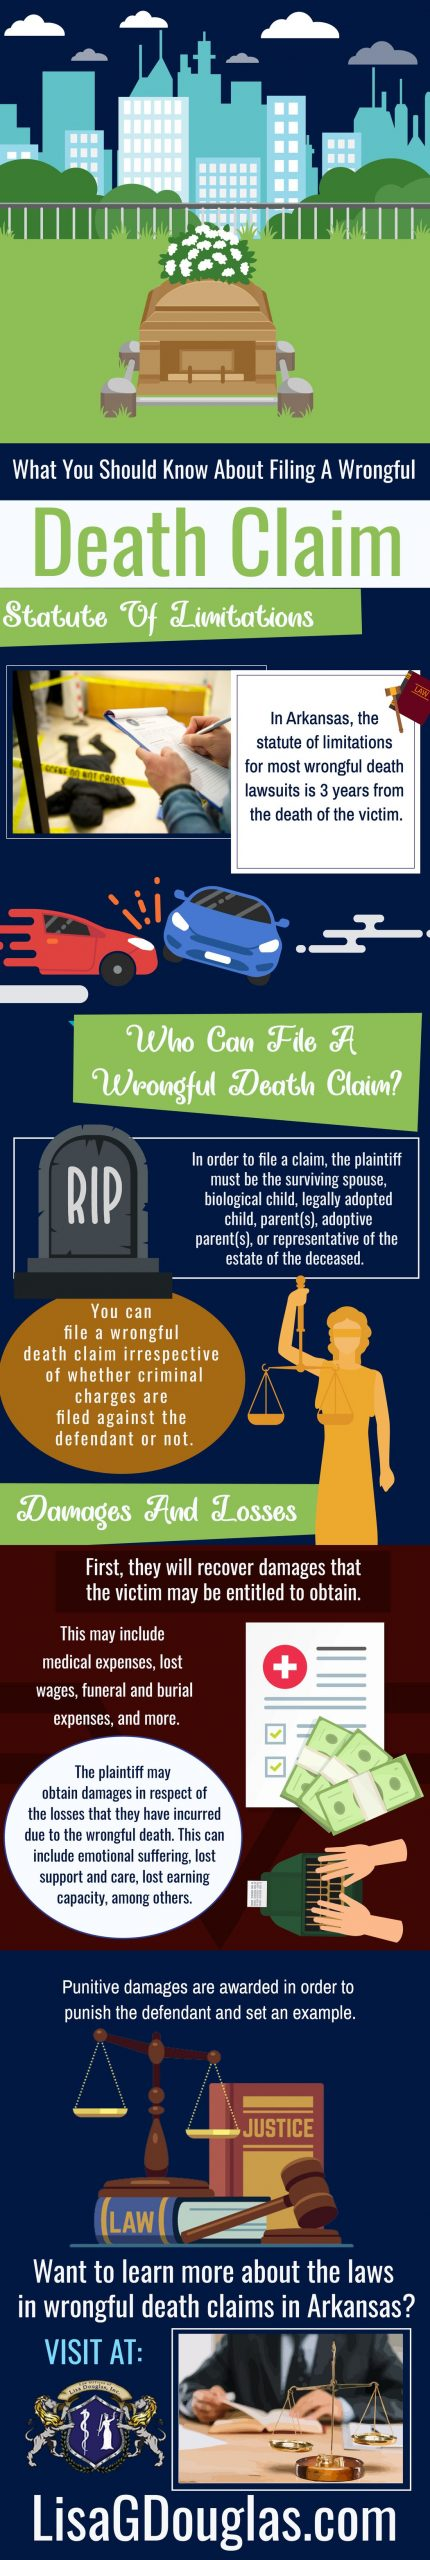 What You Should Know About Filing A Wrongful Death Claim